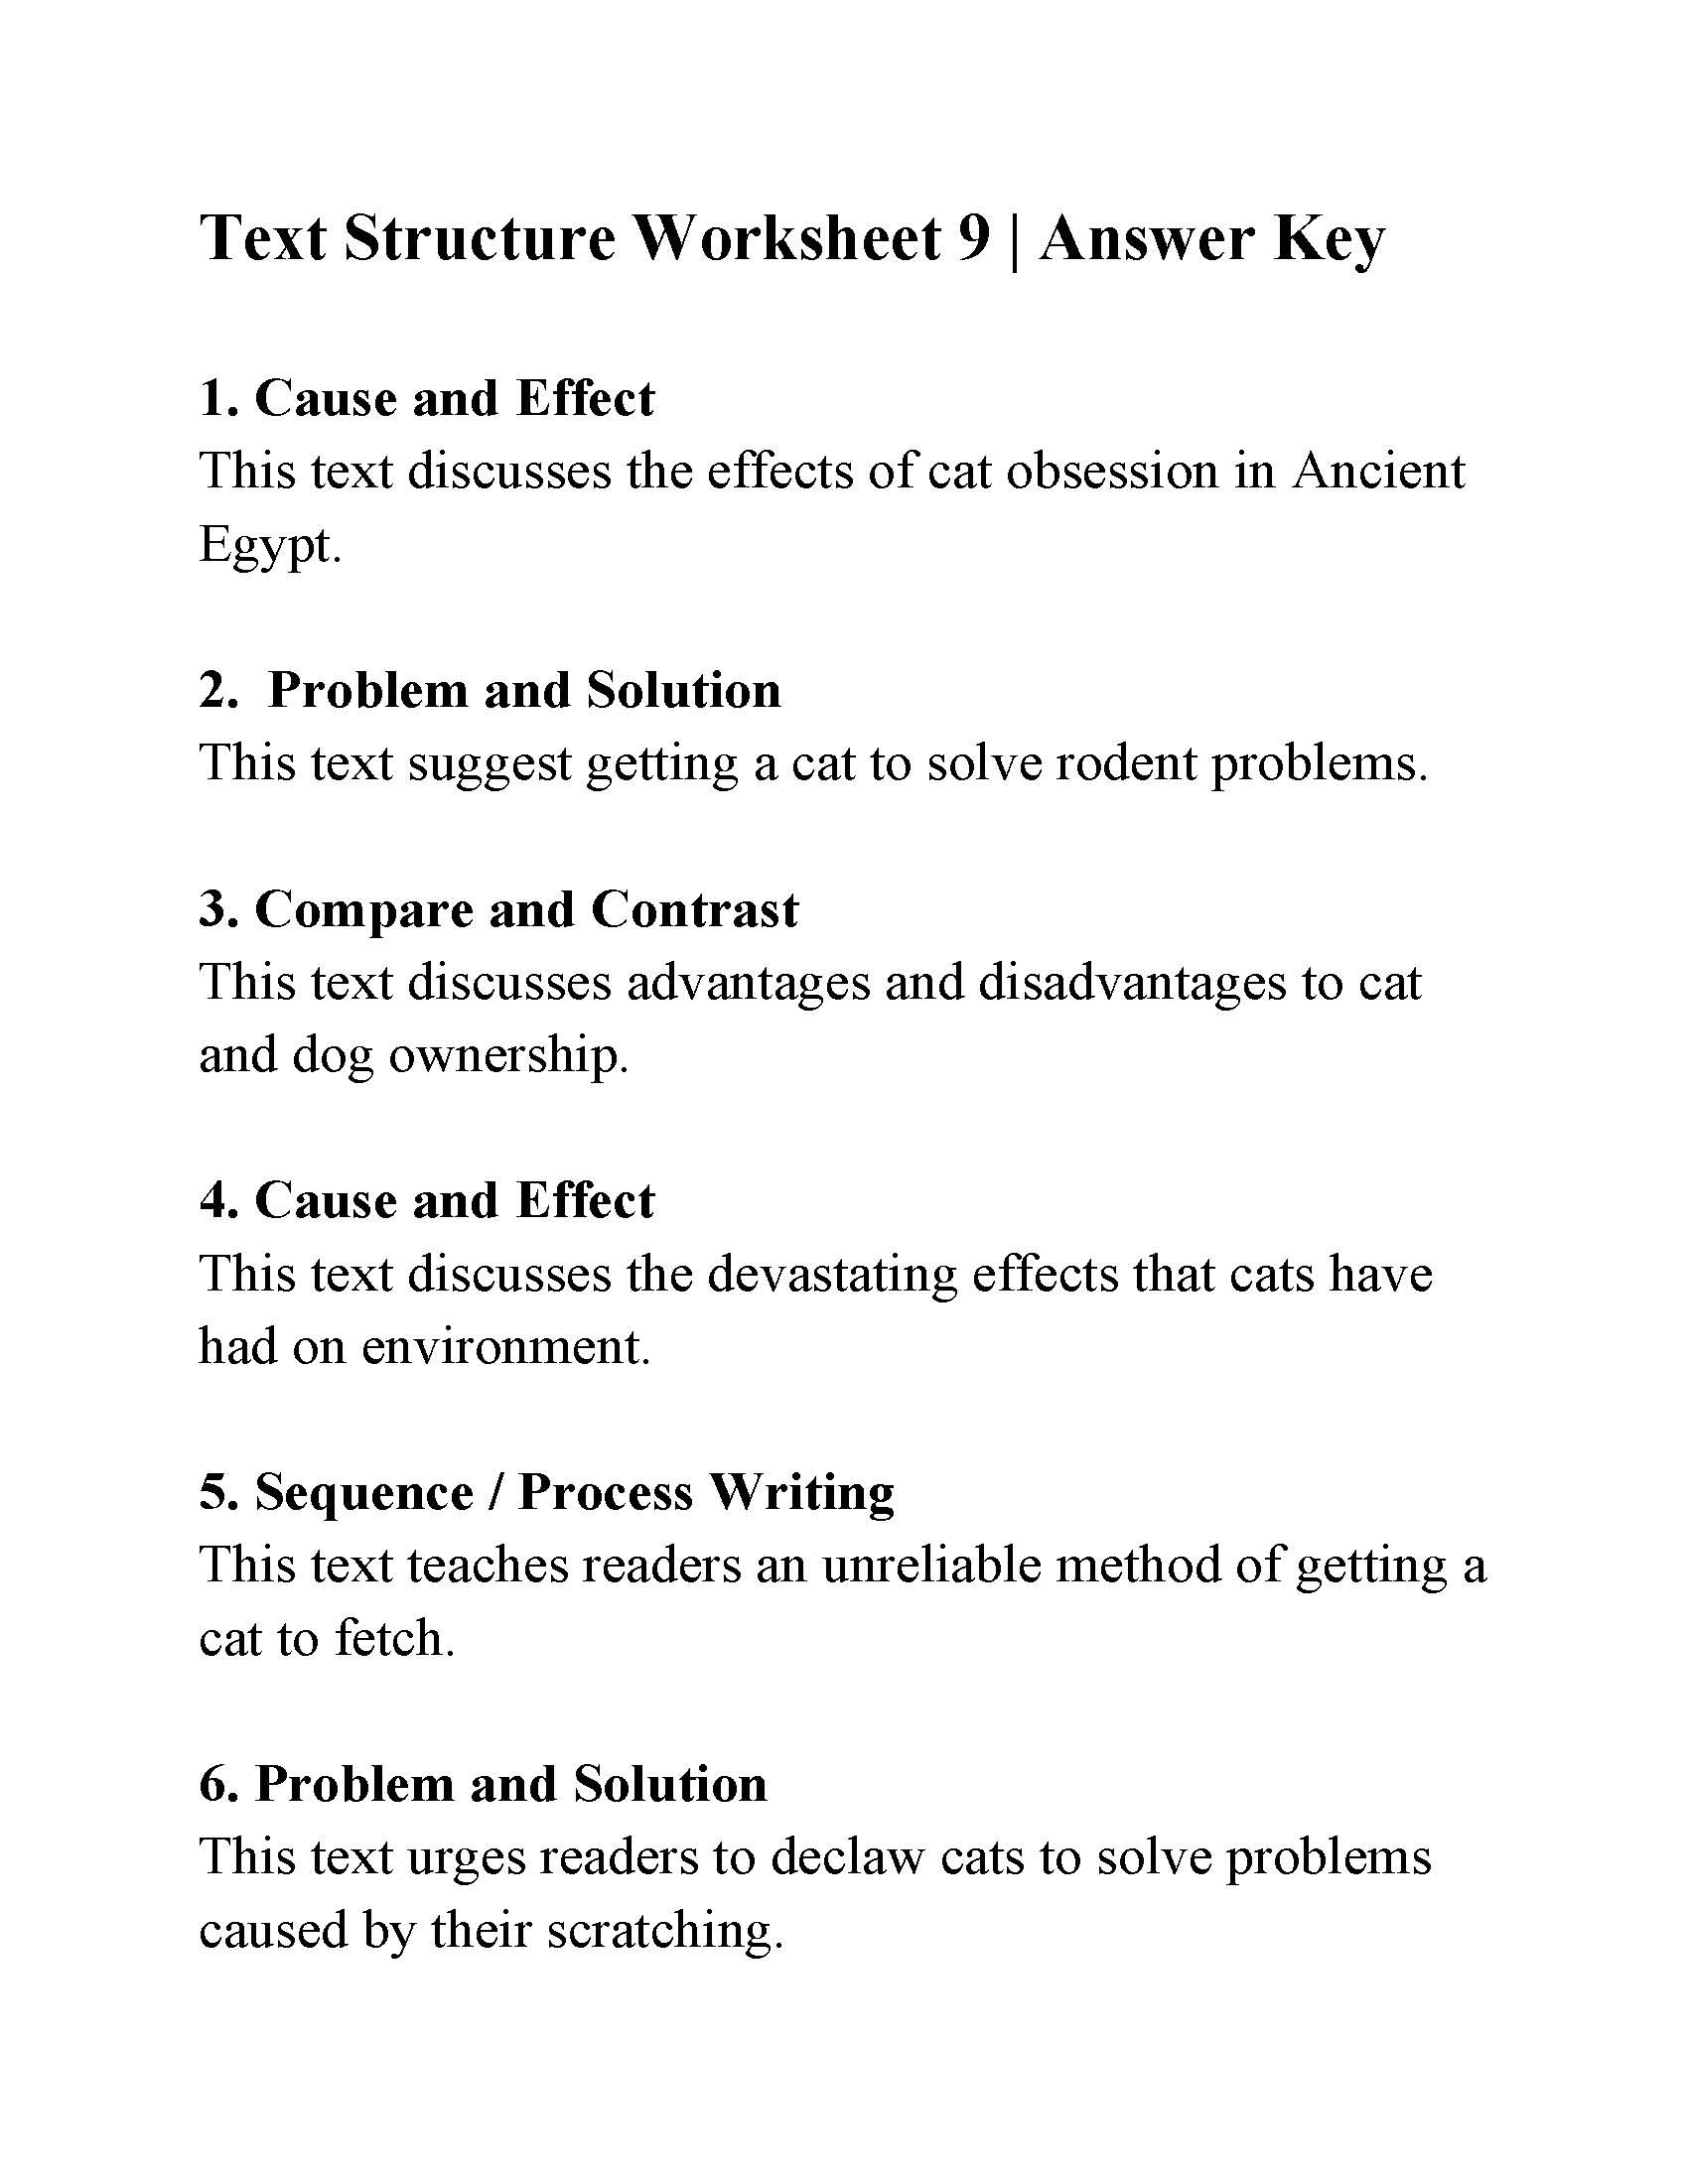 Text Structure Worksheets 4th Grade Text Structure Worksheet 9